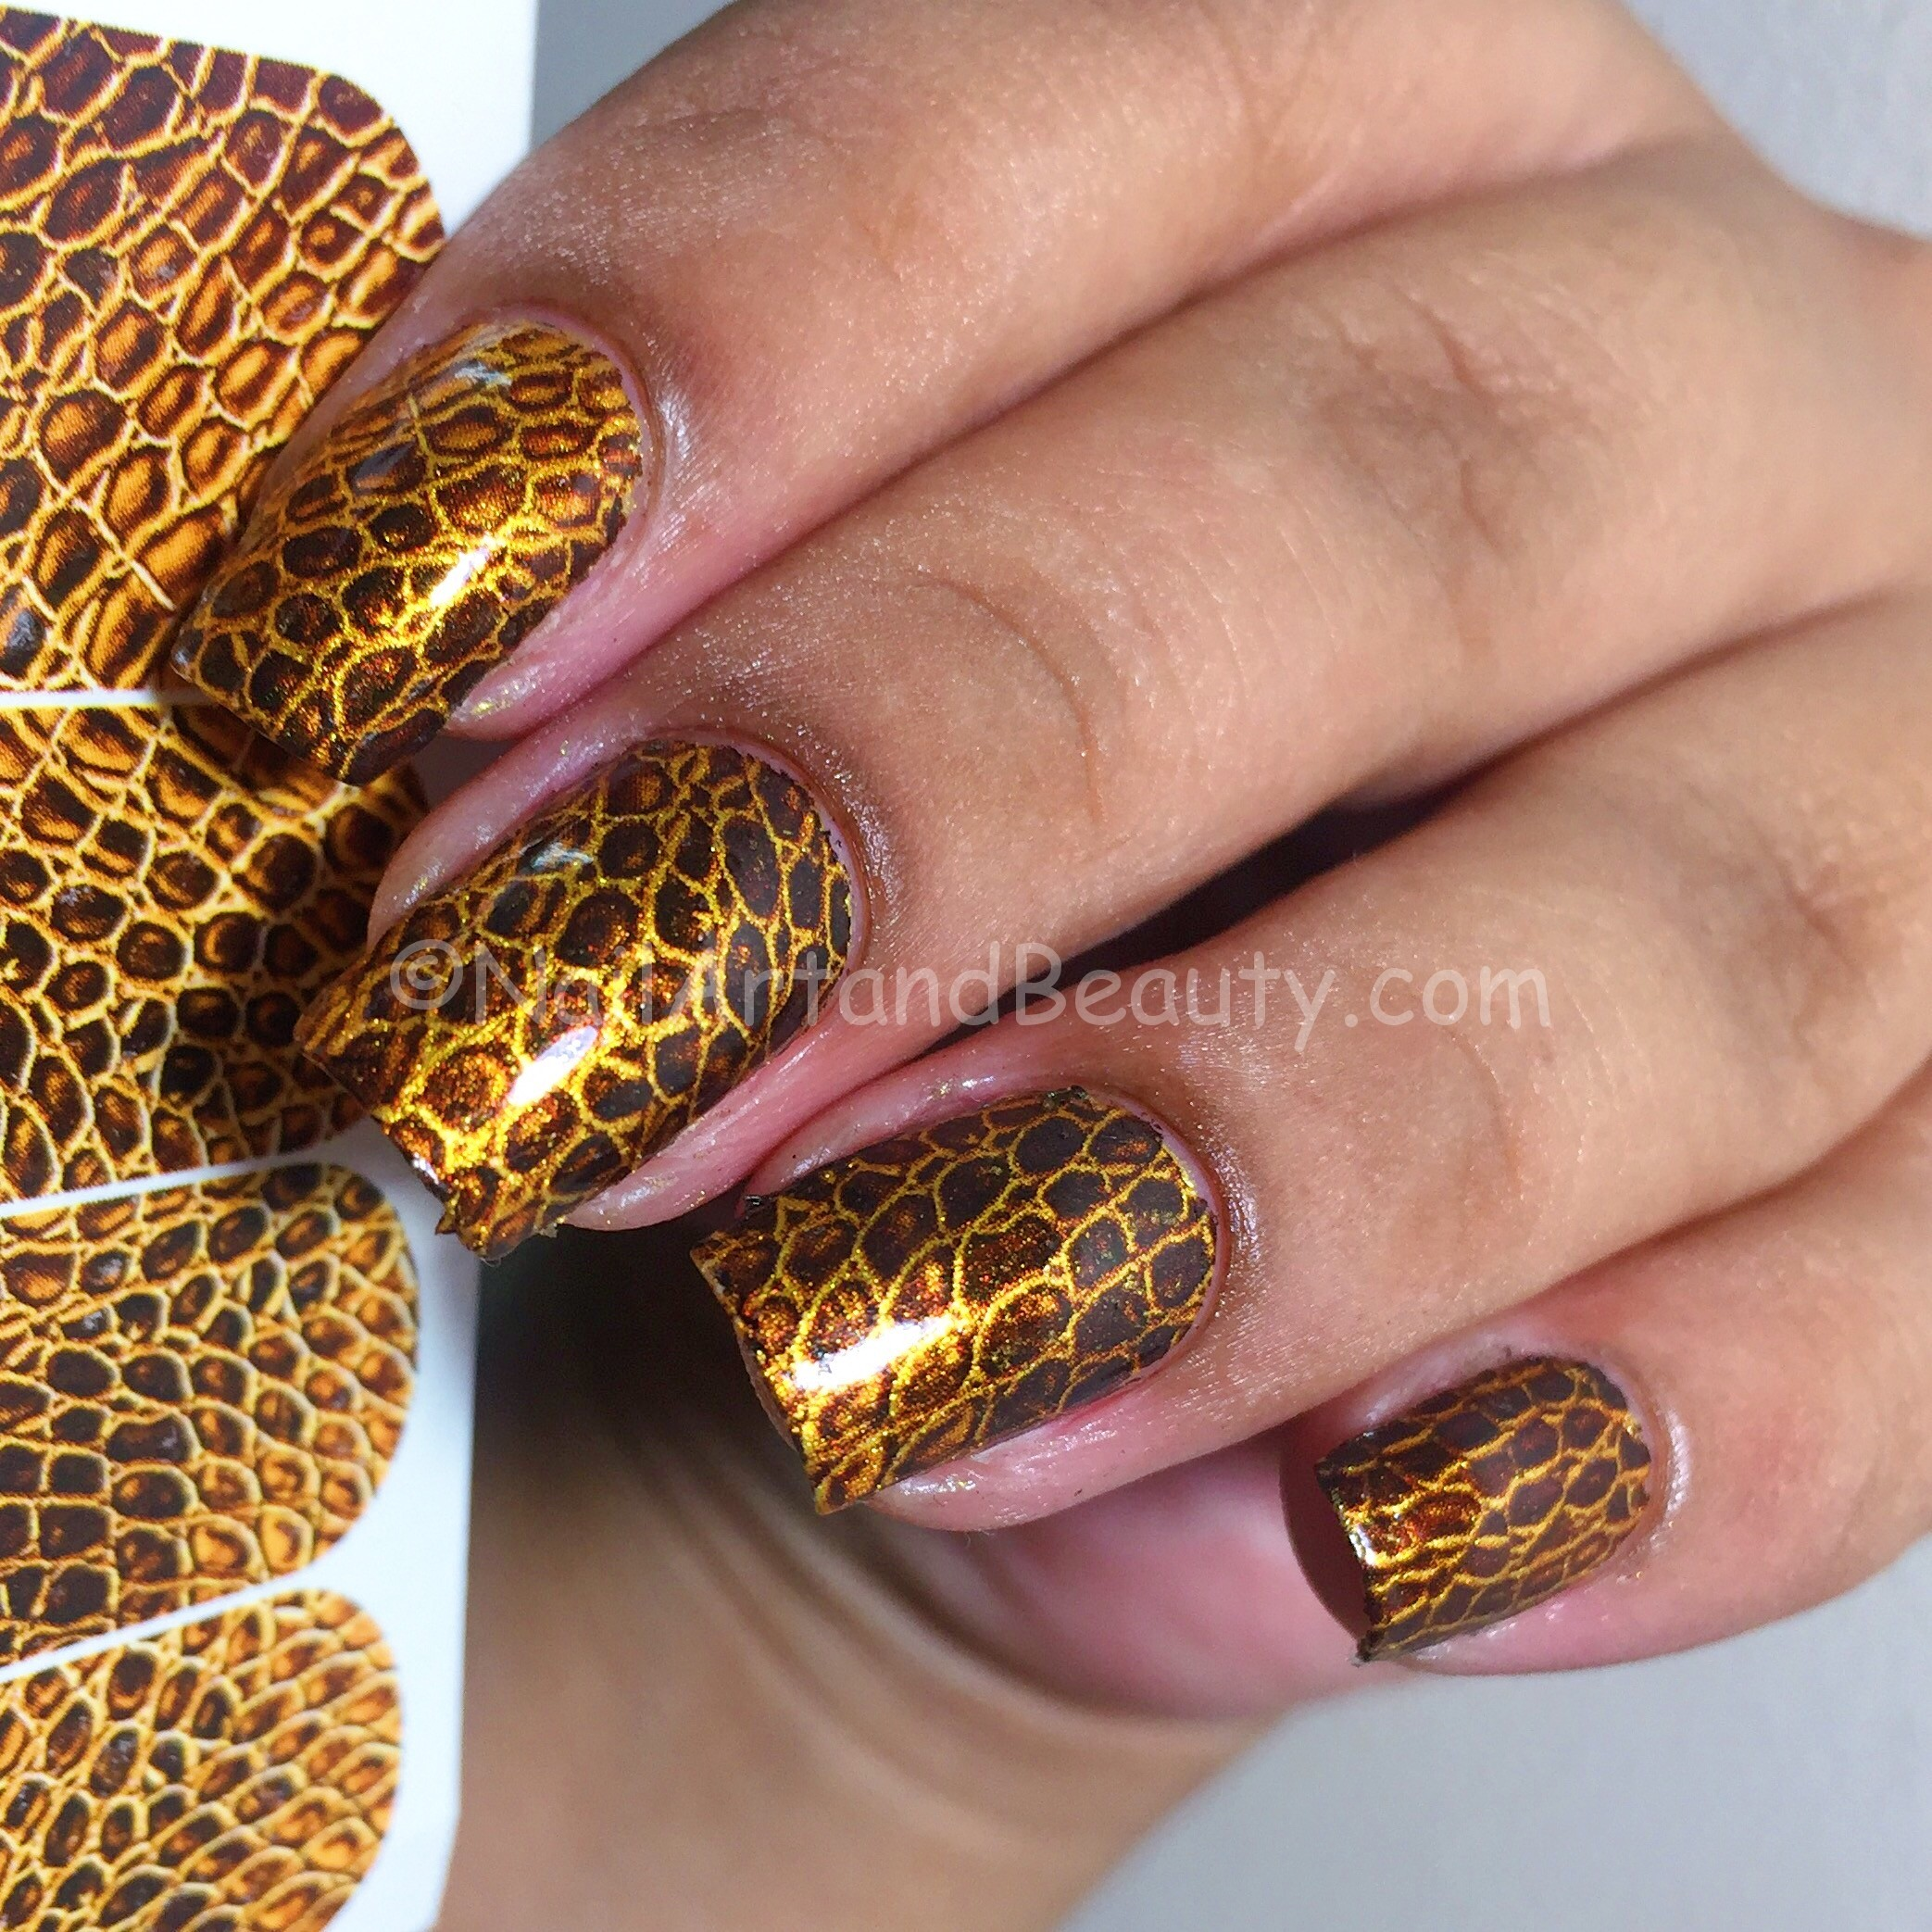 Reptile Skin Nails with MILV Decals